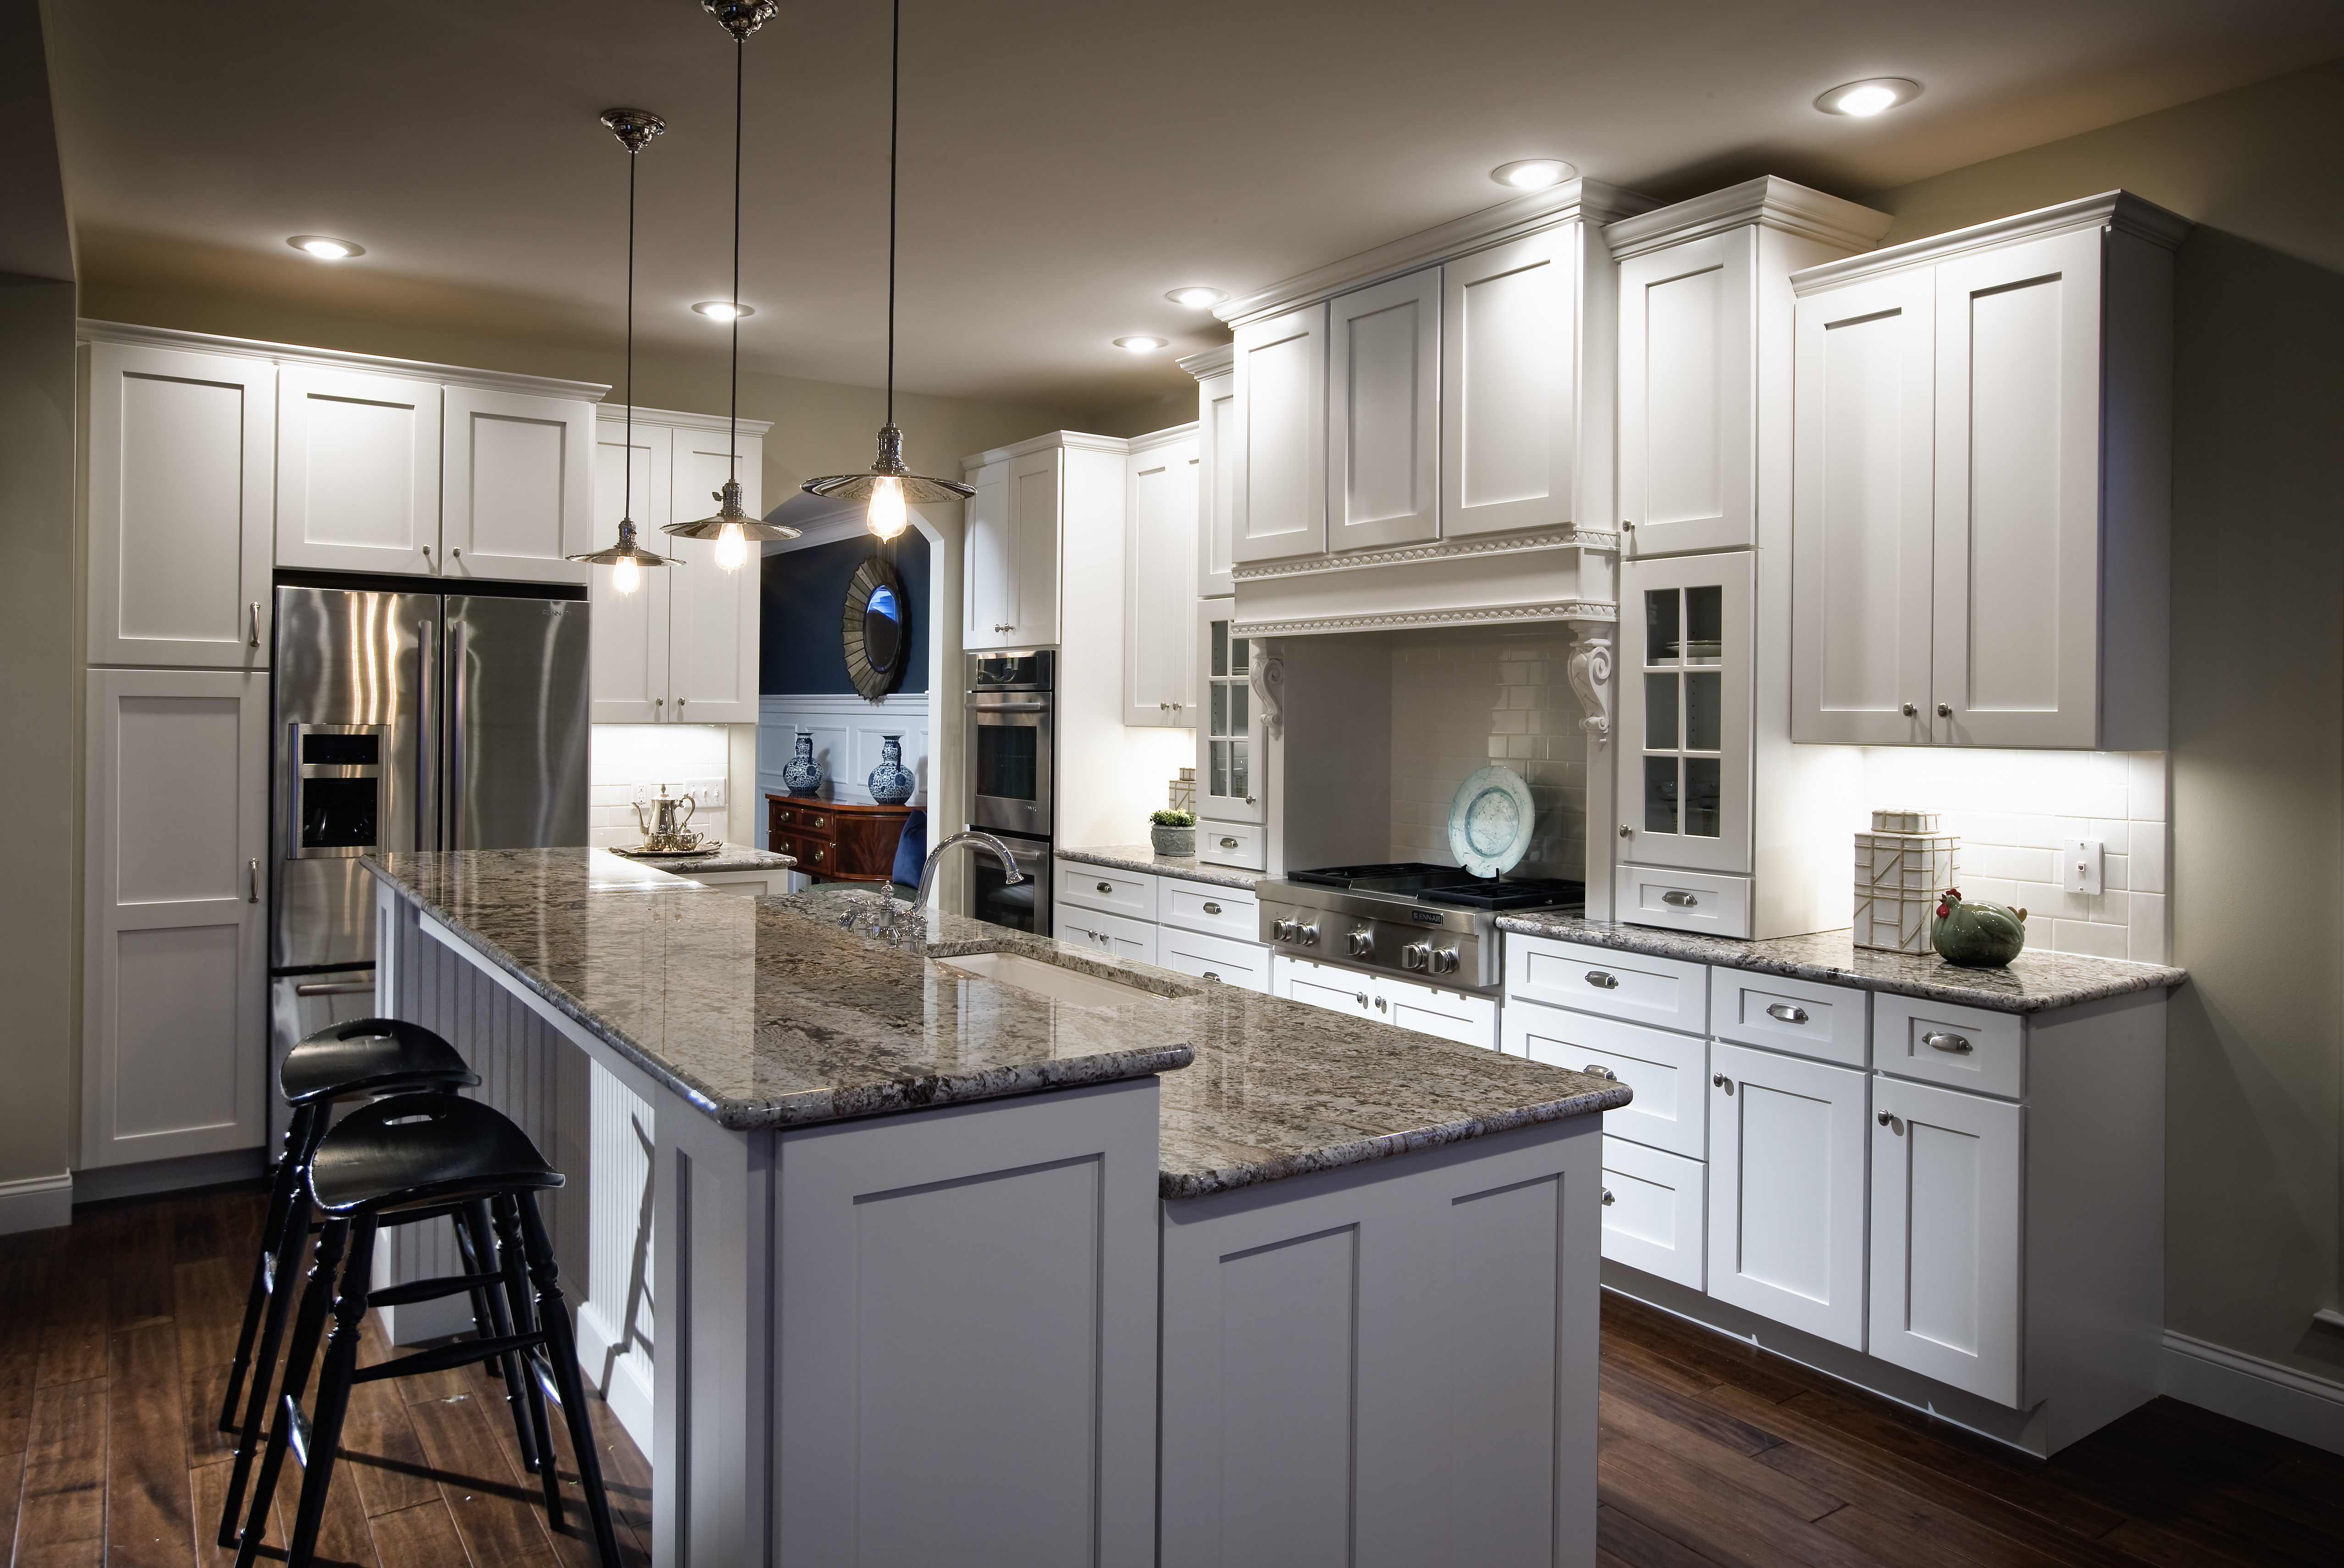 kitchen islands with stainless steel tops stainless steel kitchen countertops Kitchen islands with stainless steel tops Photo 7